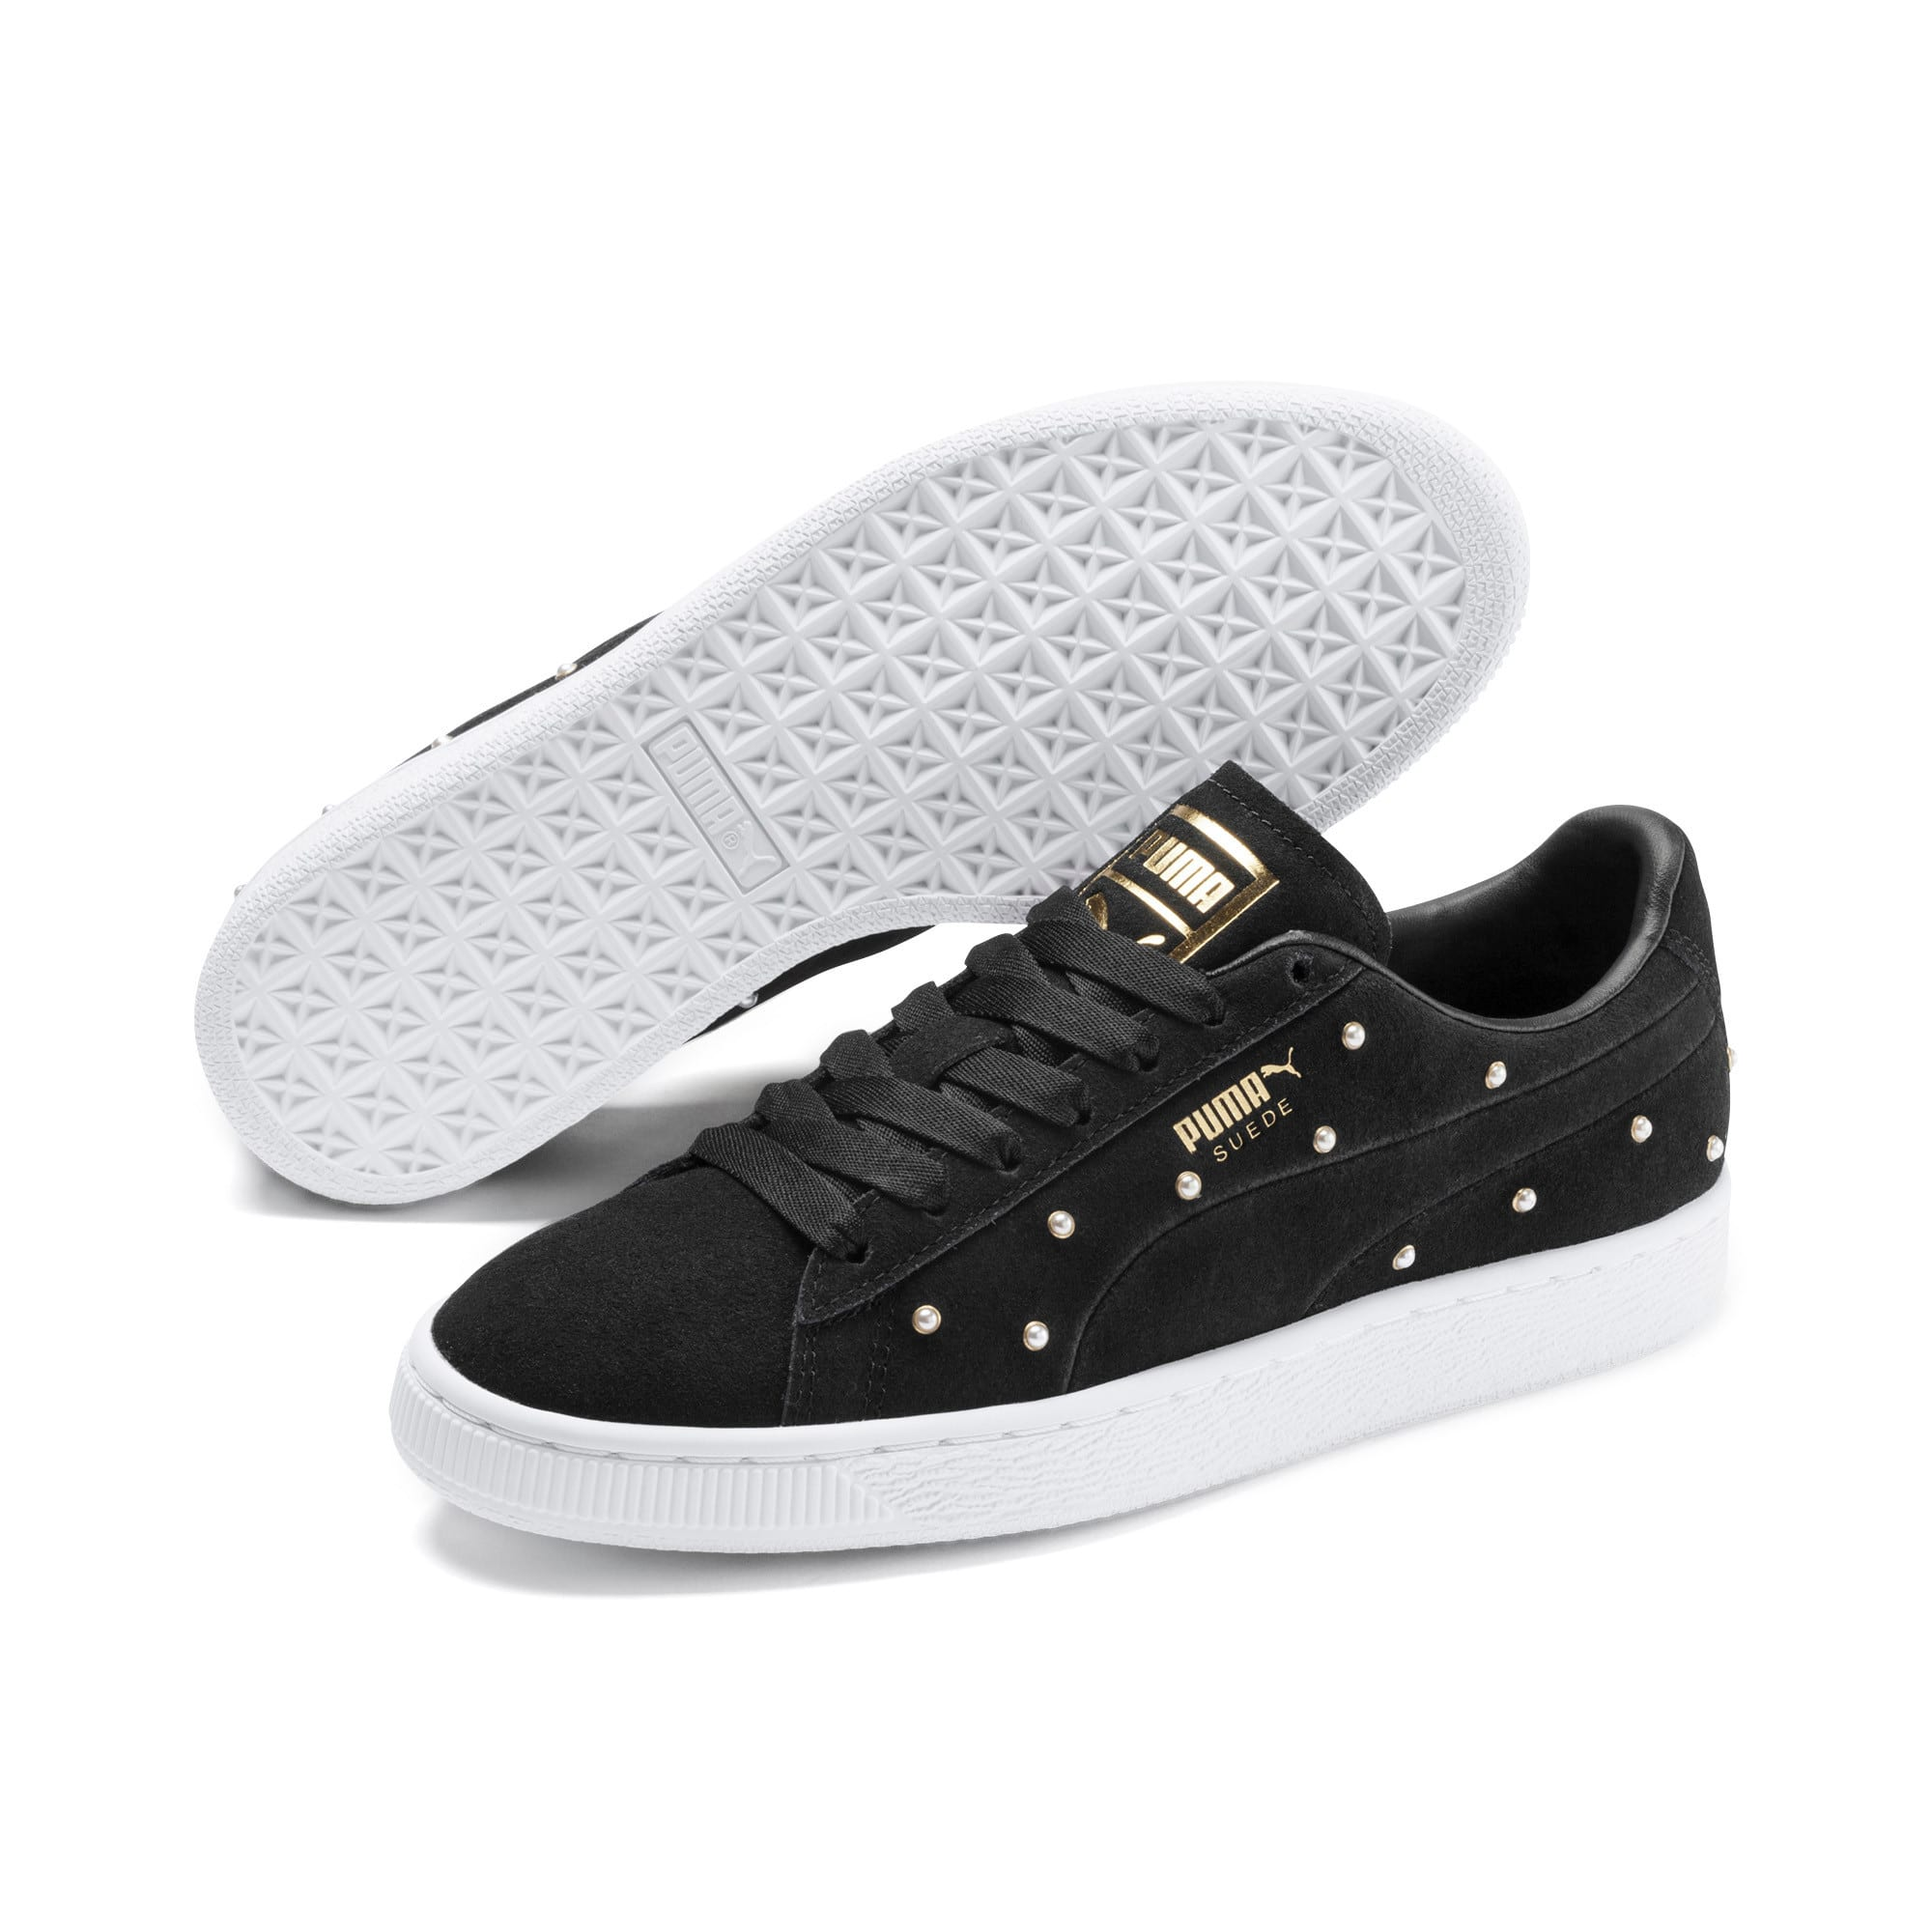 Thumbnail 3 of Suede Pearl Studs Women's Sneakers, Puma Black-Puma Team Gold, medium